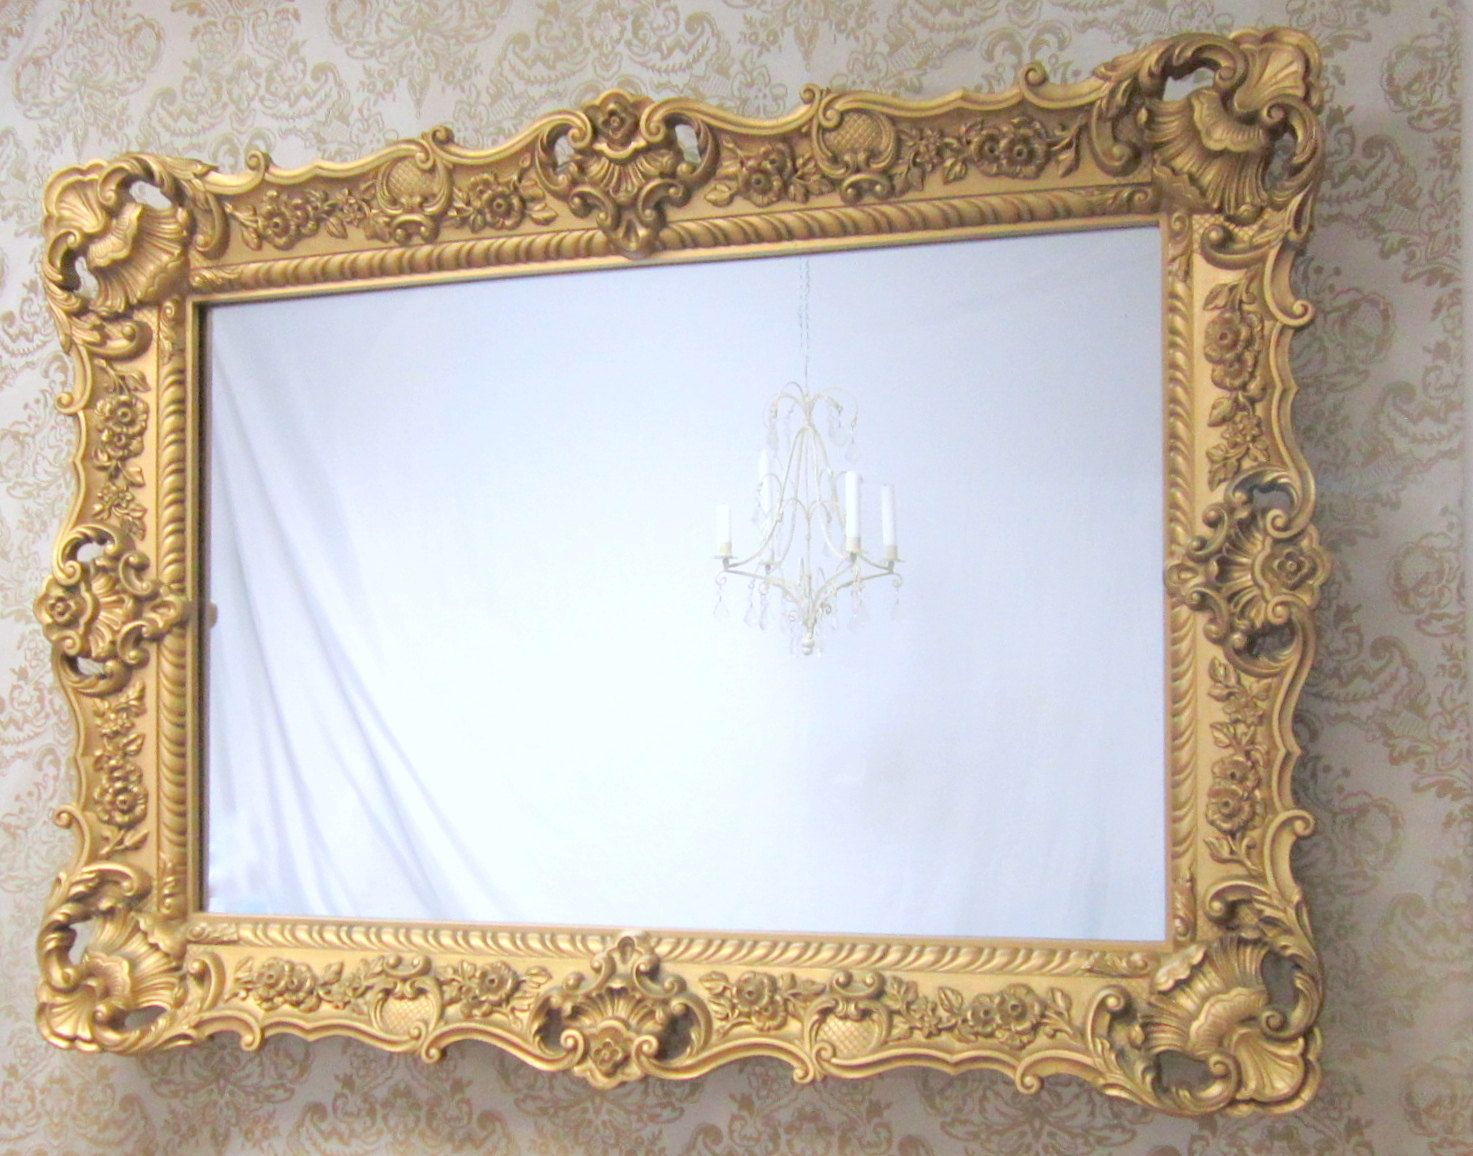 Hollywood Regency Mirrors For Sale 45x33 Large Etsy Gold Framed Mirror Mirrors For Sale Hollywood Regency Mirror